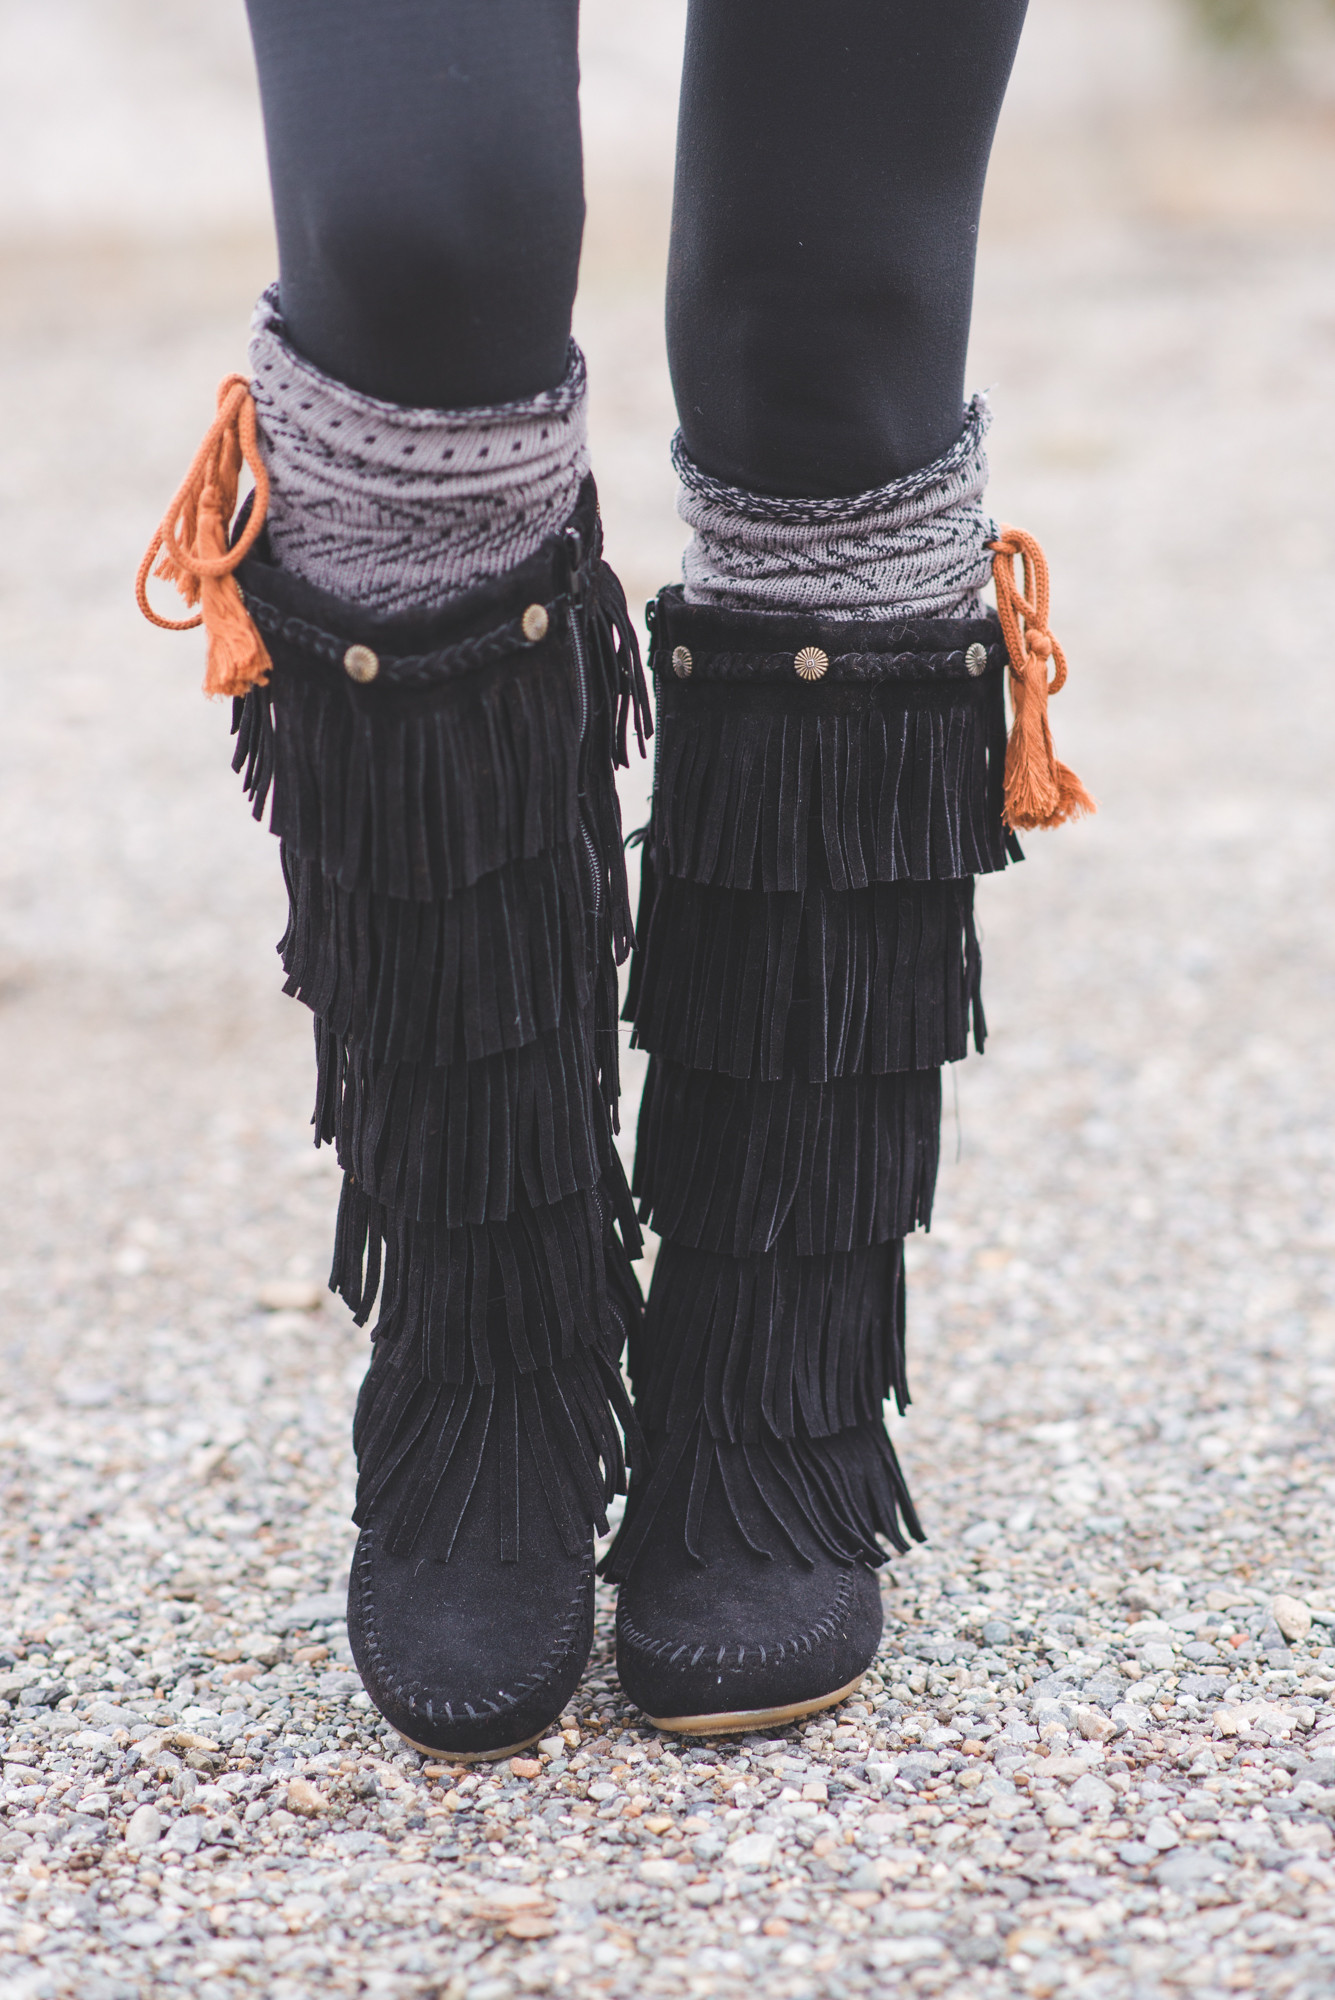 BOHEMIAN BRAIDED STUD MOCCASIN BOOTS